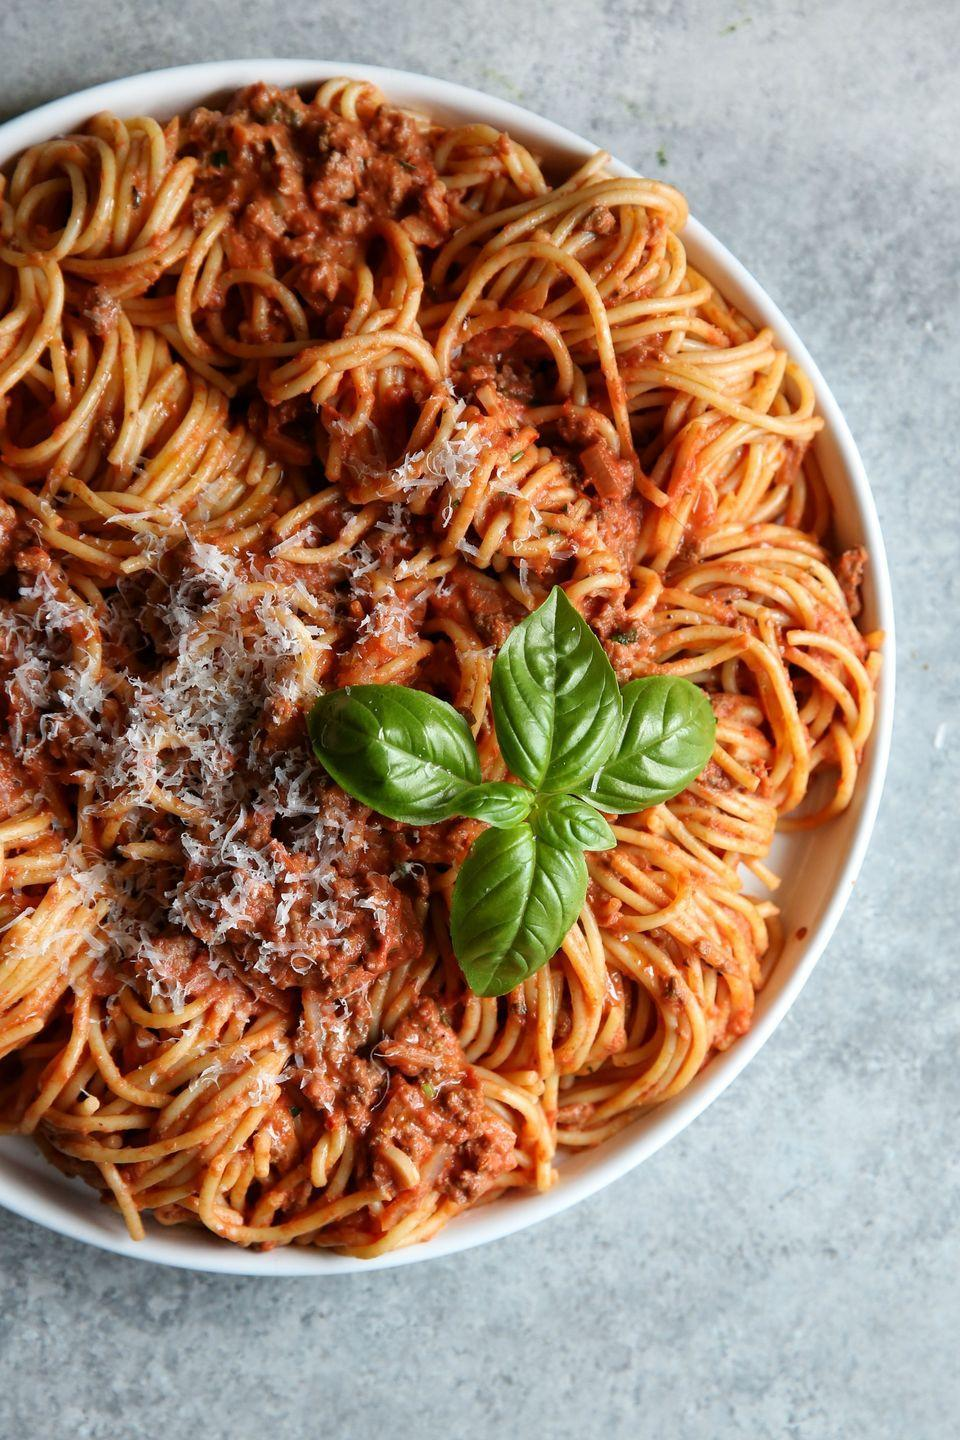 """<p>This simple meat sauce will persuade you to ditch the jarred stuff for good.</p><p>Get the recipe from <a href=""""/cooking/recipe-ideas/recipes/a47204/spaghetti-with-creamy-meat-sauce-recipe/"""" data-ylk=""""slk:Delish"""" class=""""link rapid-noclick-resp"""">Delish</a>.</p>"""